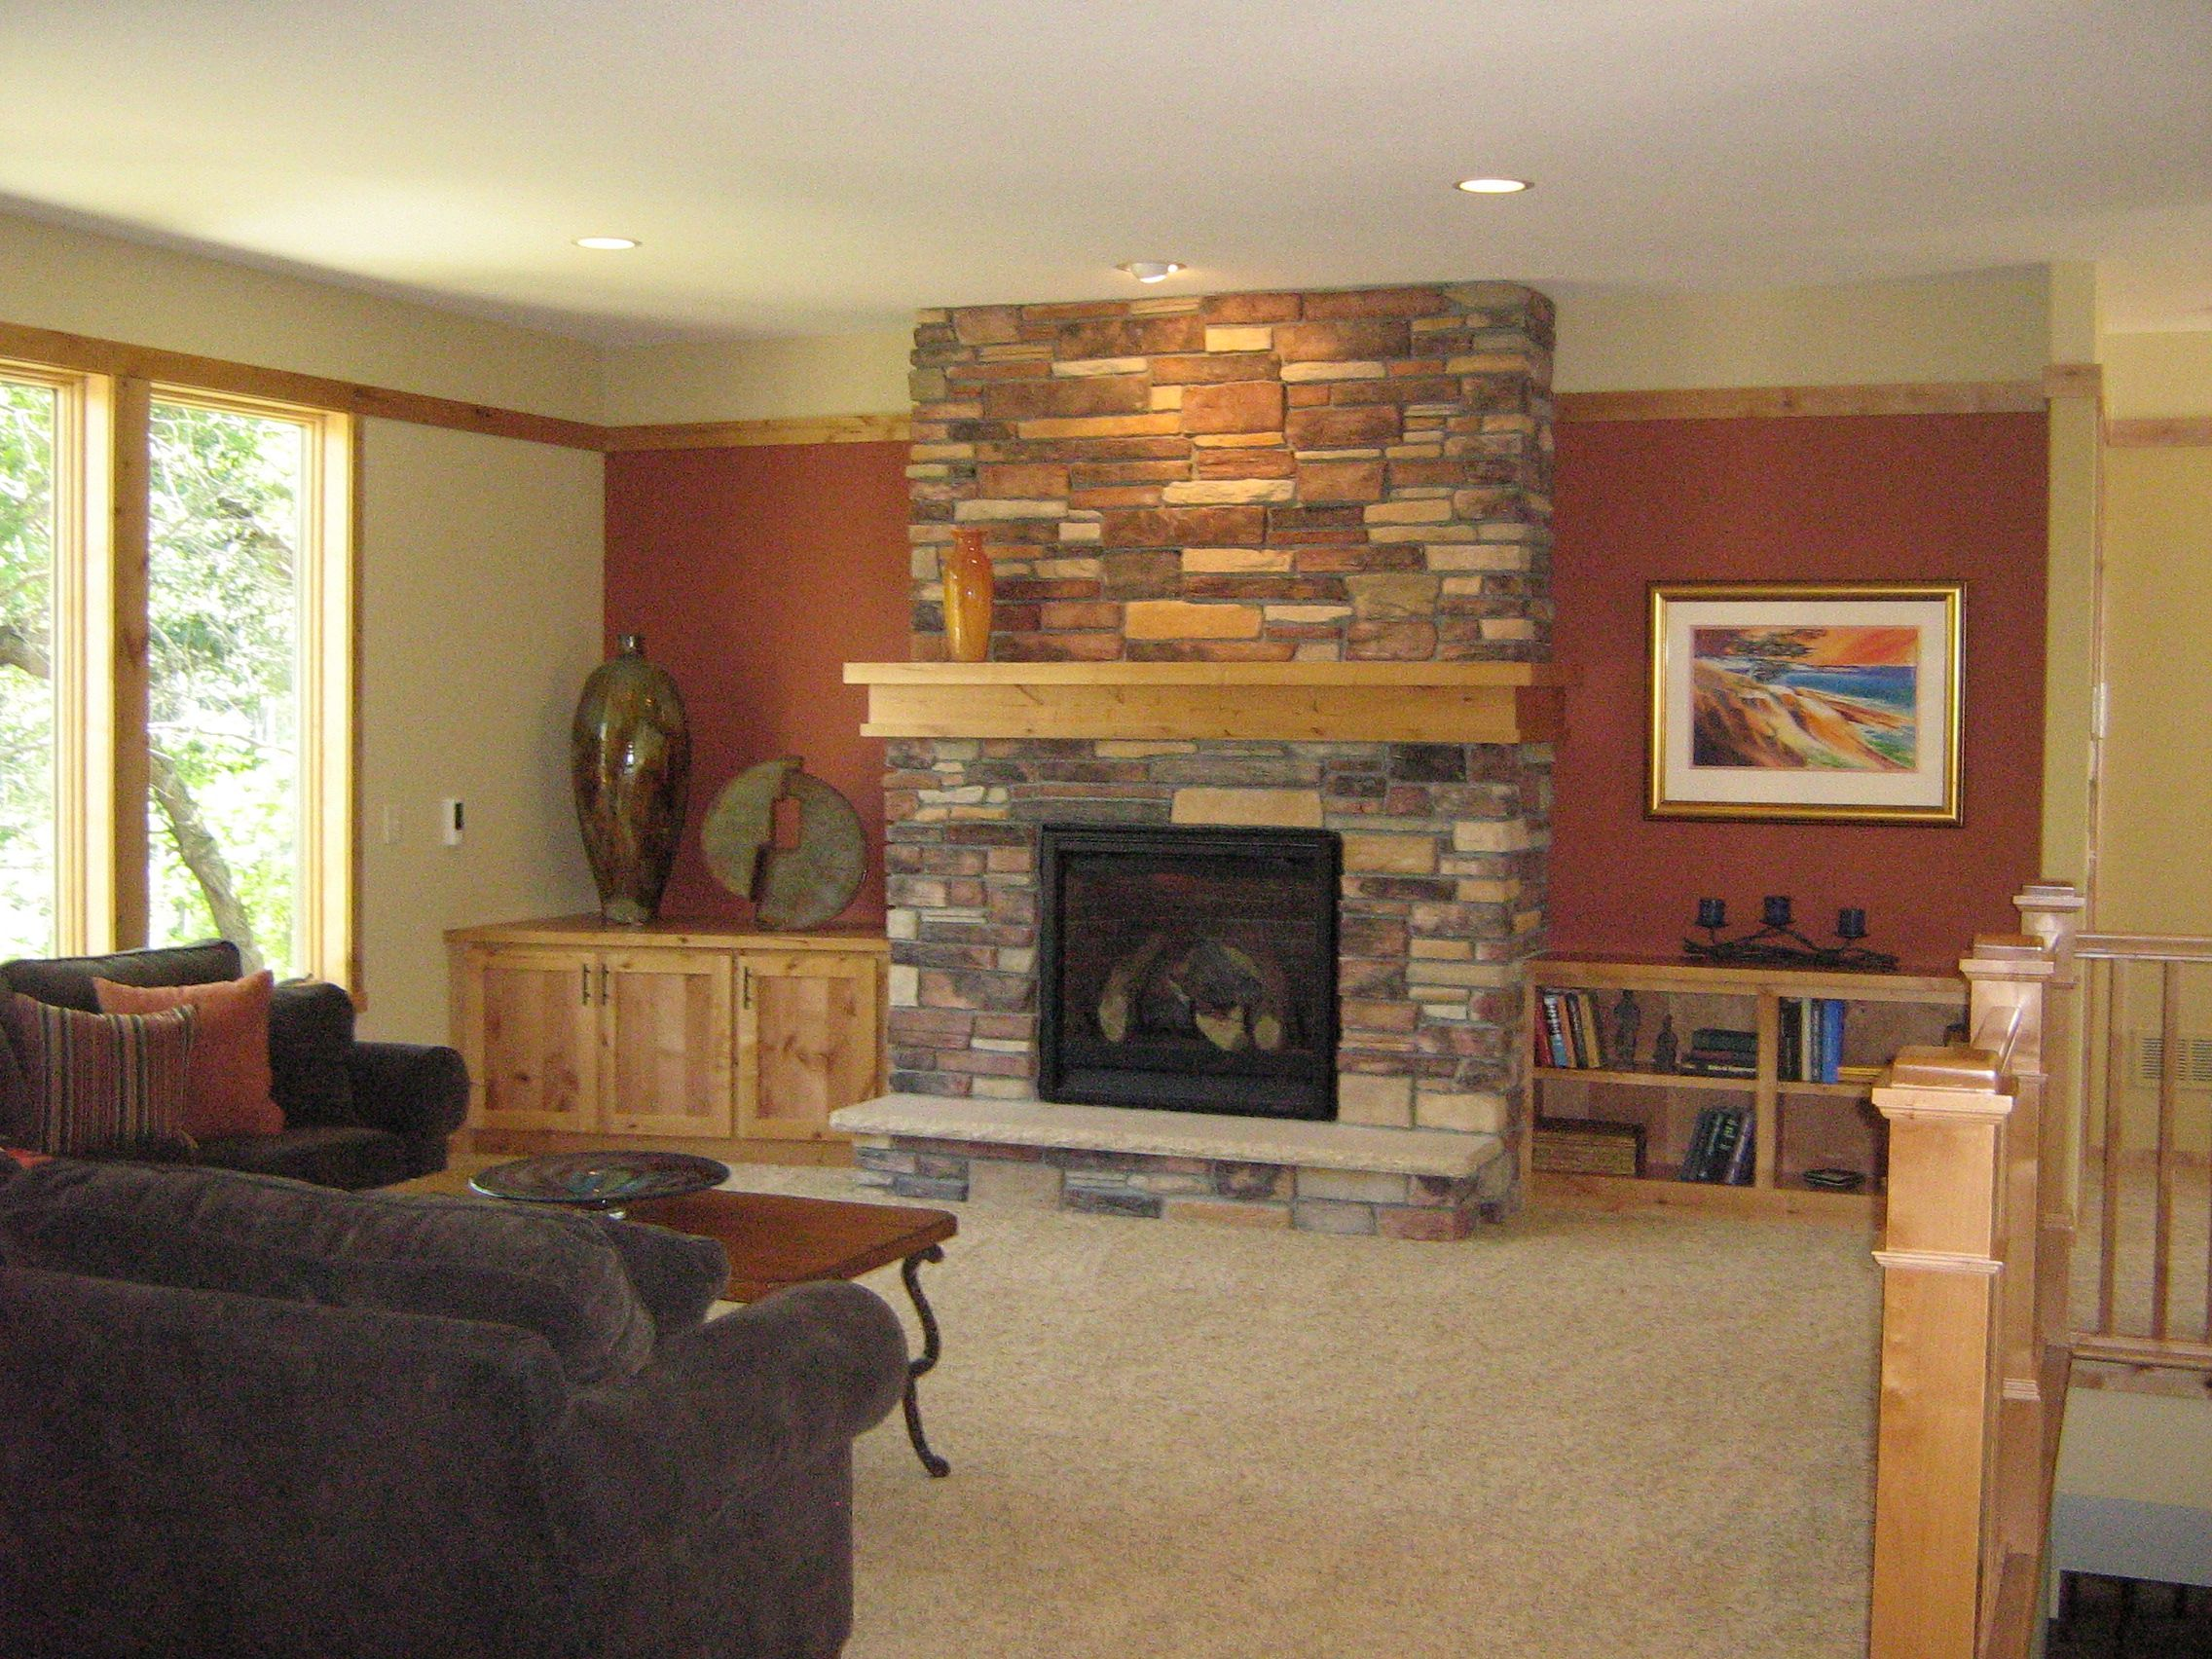 17 images about painting walls color ideas on photos living room red brick fireplace